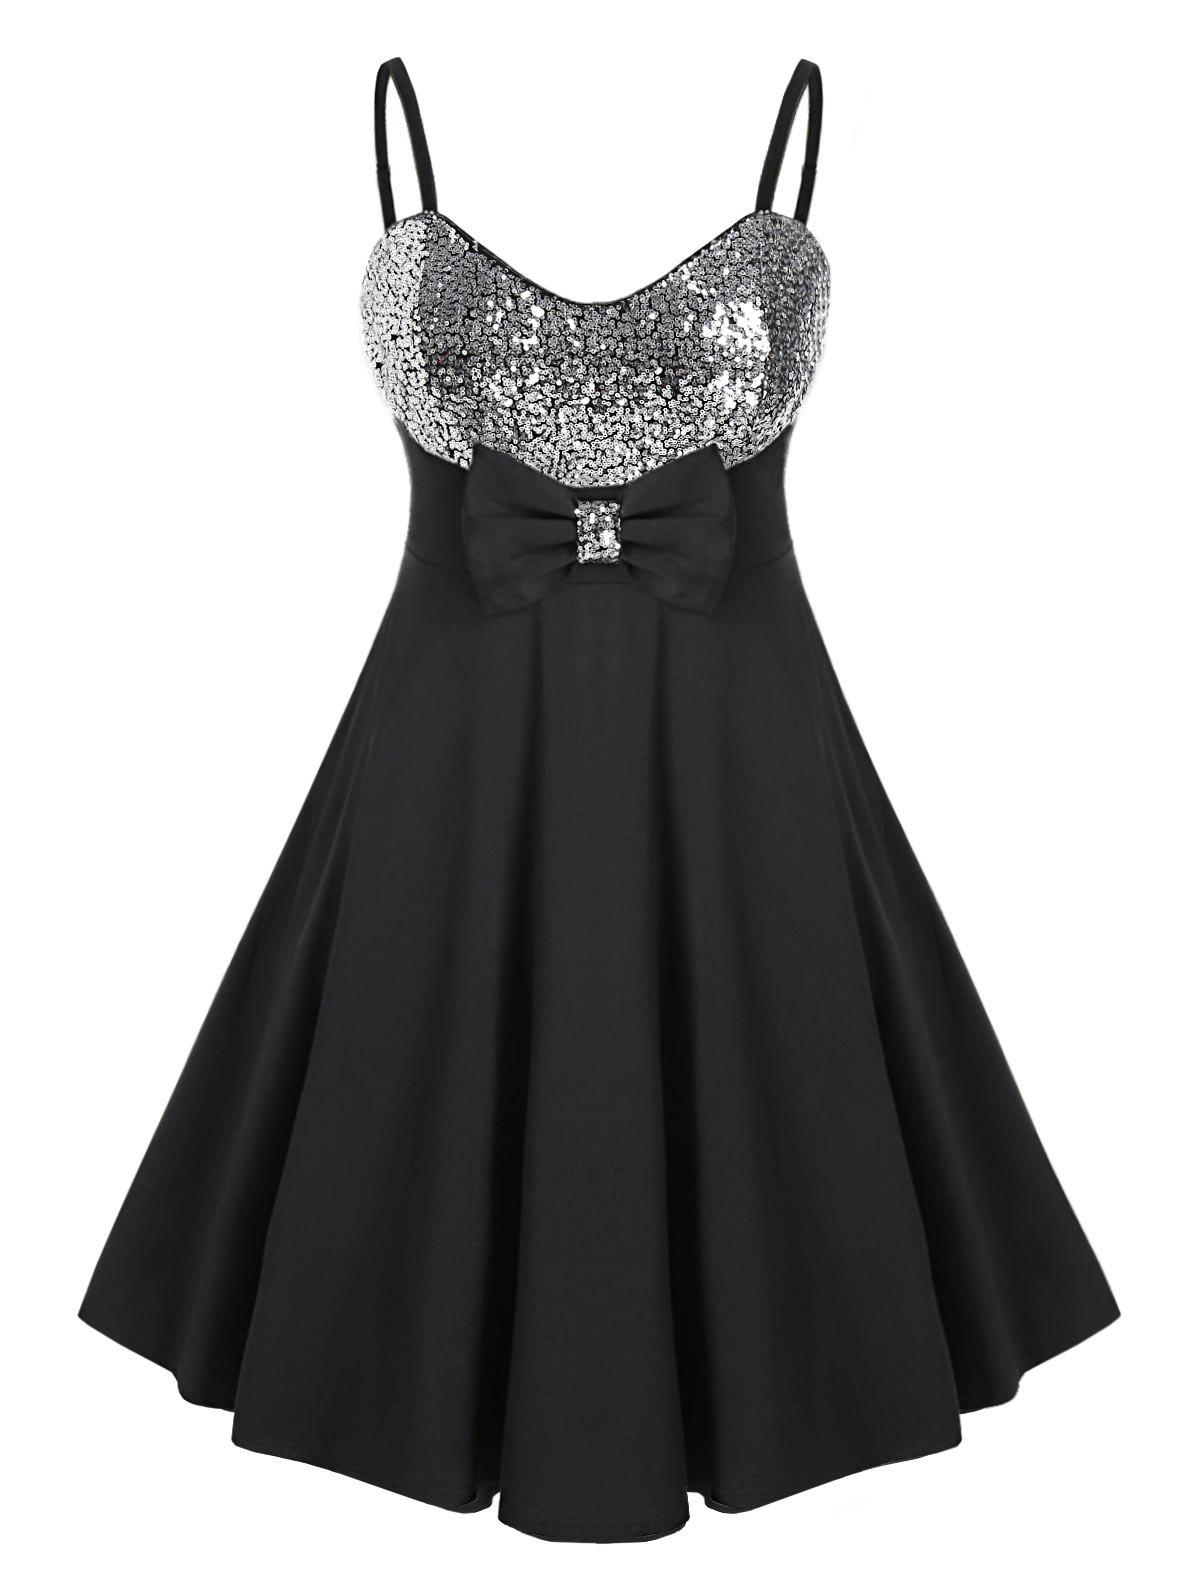 Plus Size Sequins Bowknot Prom Dress - BLACK 5X